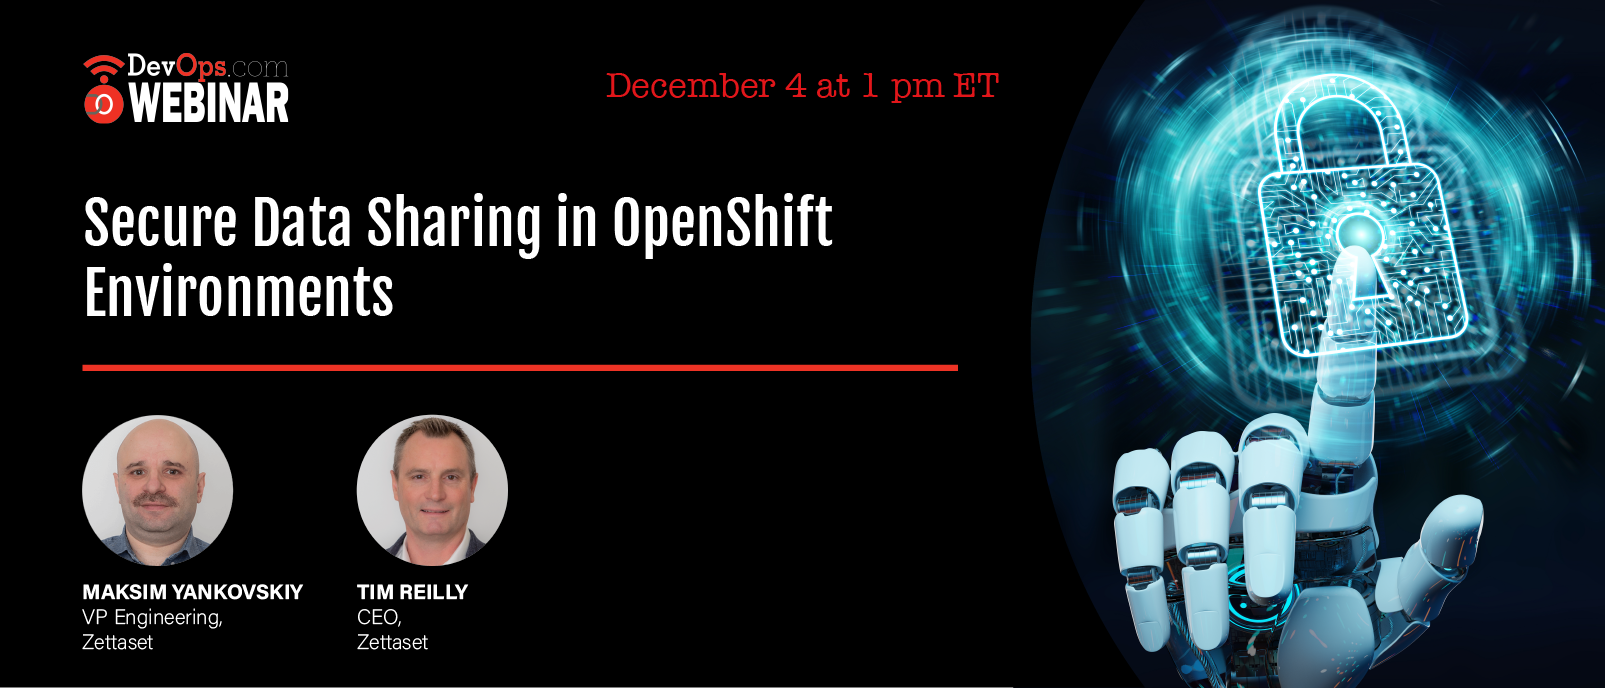 Secure Data Sharing in OpenShift Environments